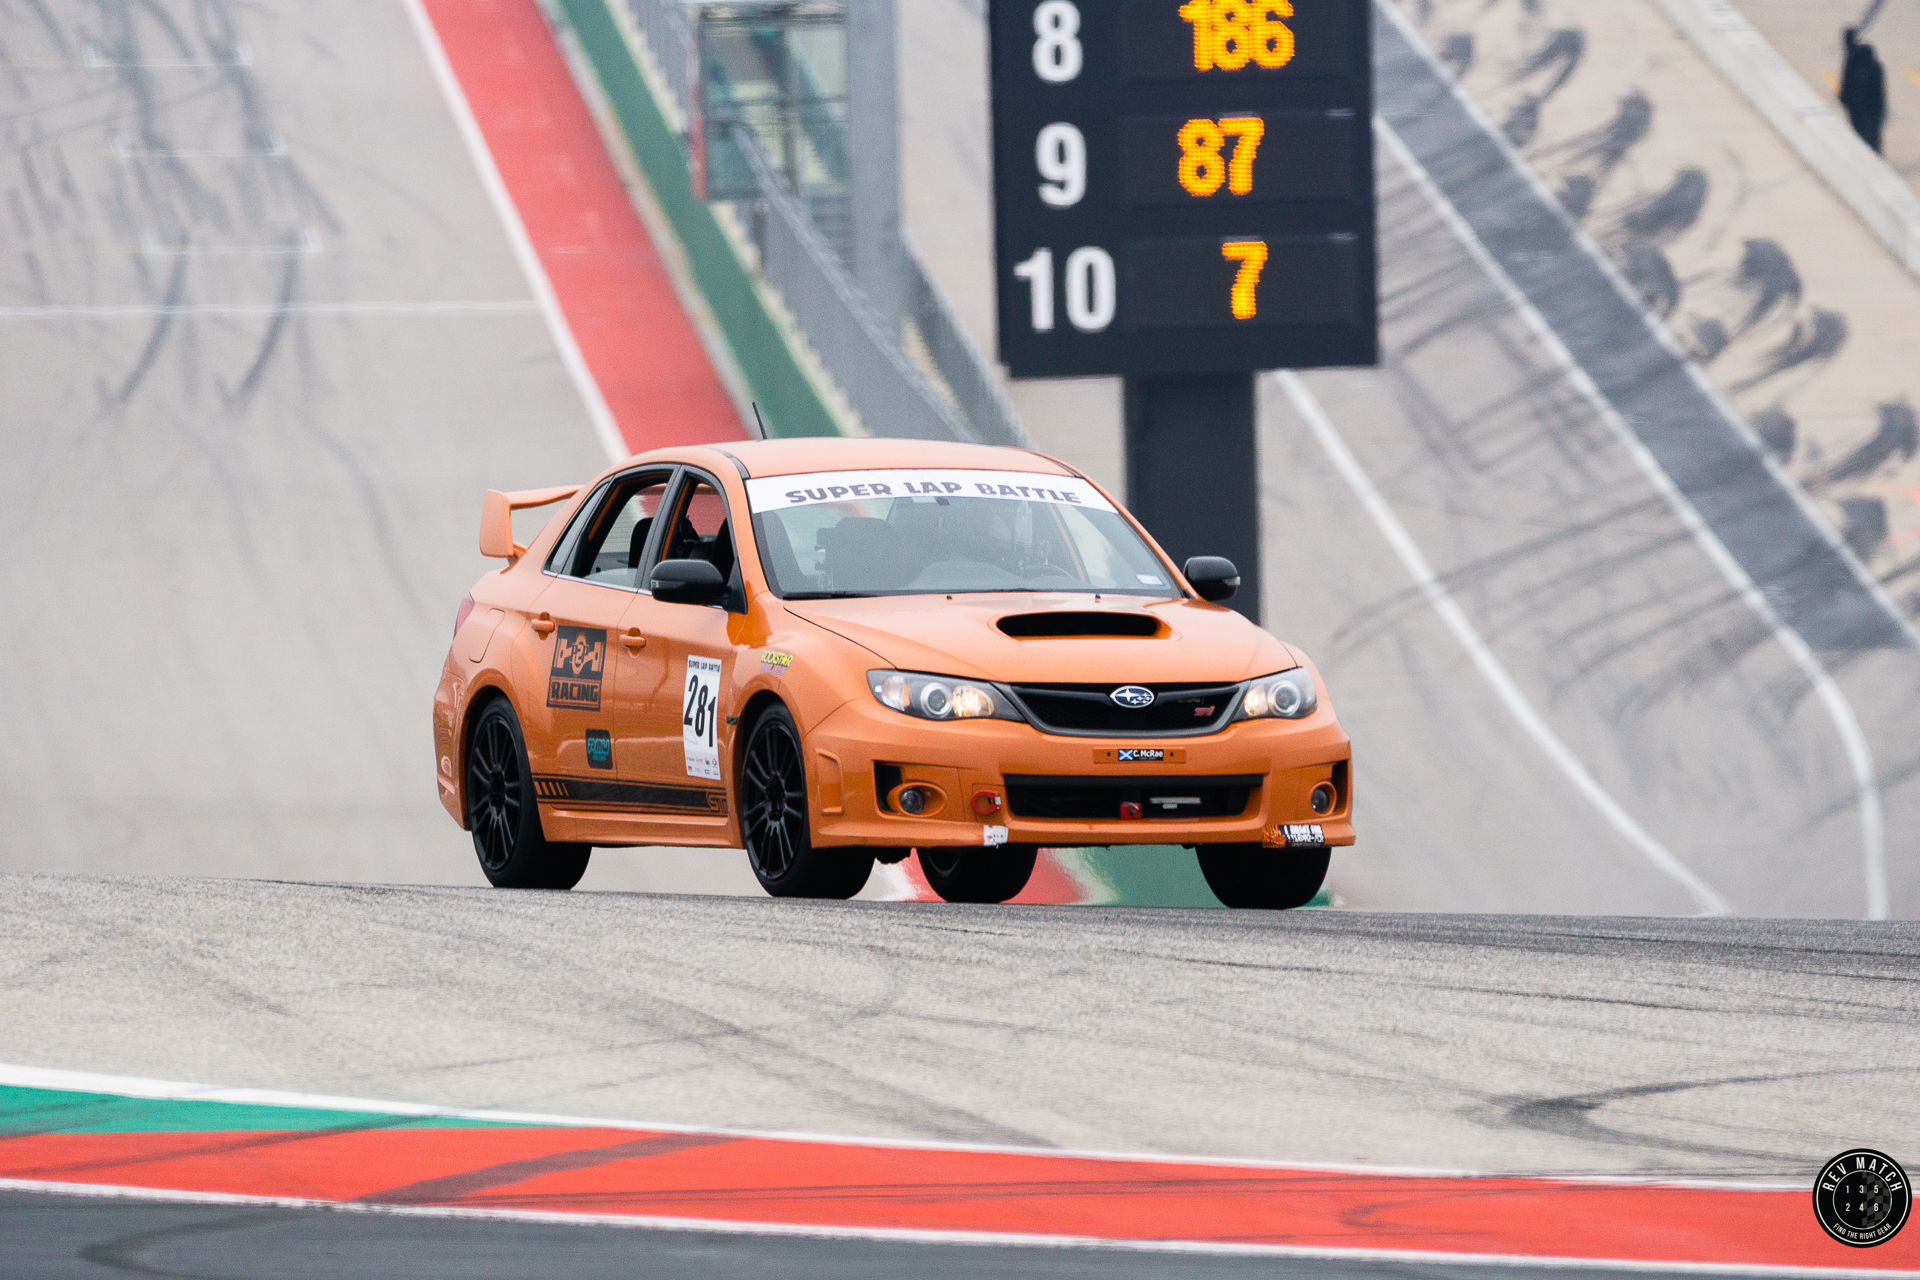 Super Lap Battle COTA Rev Match Media-13.jpg